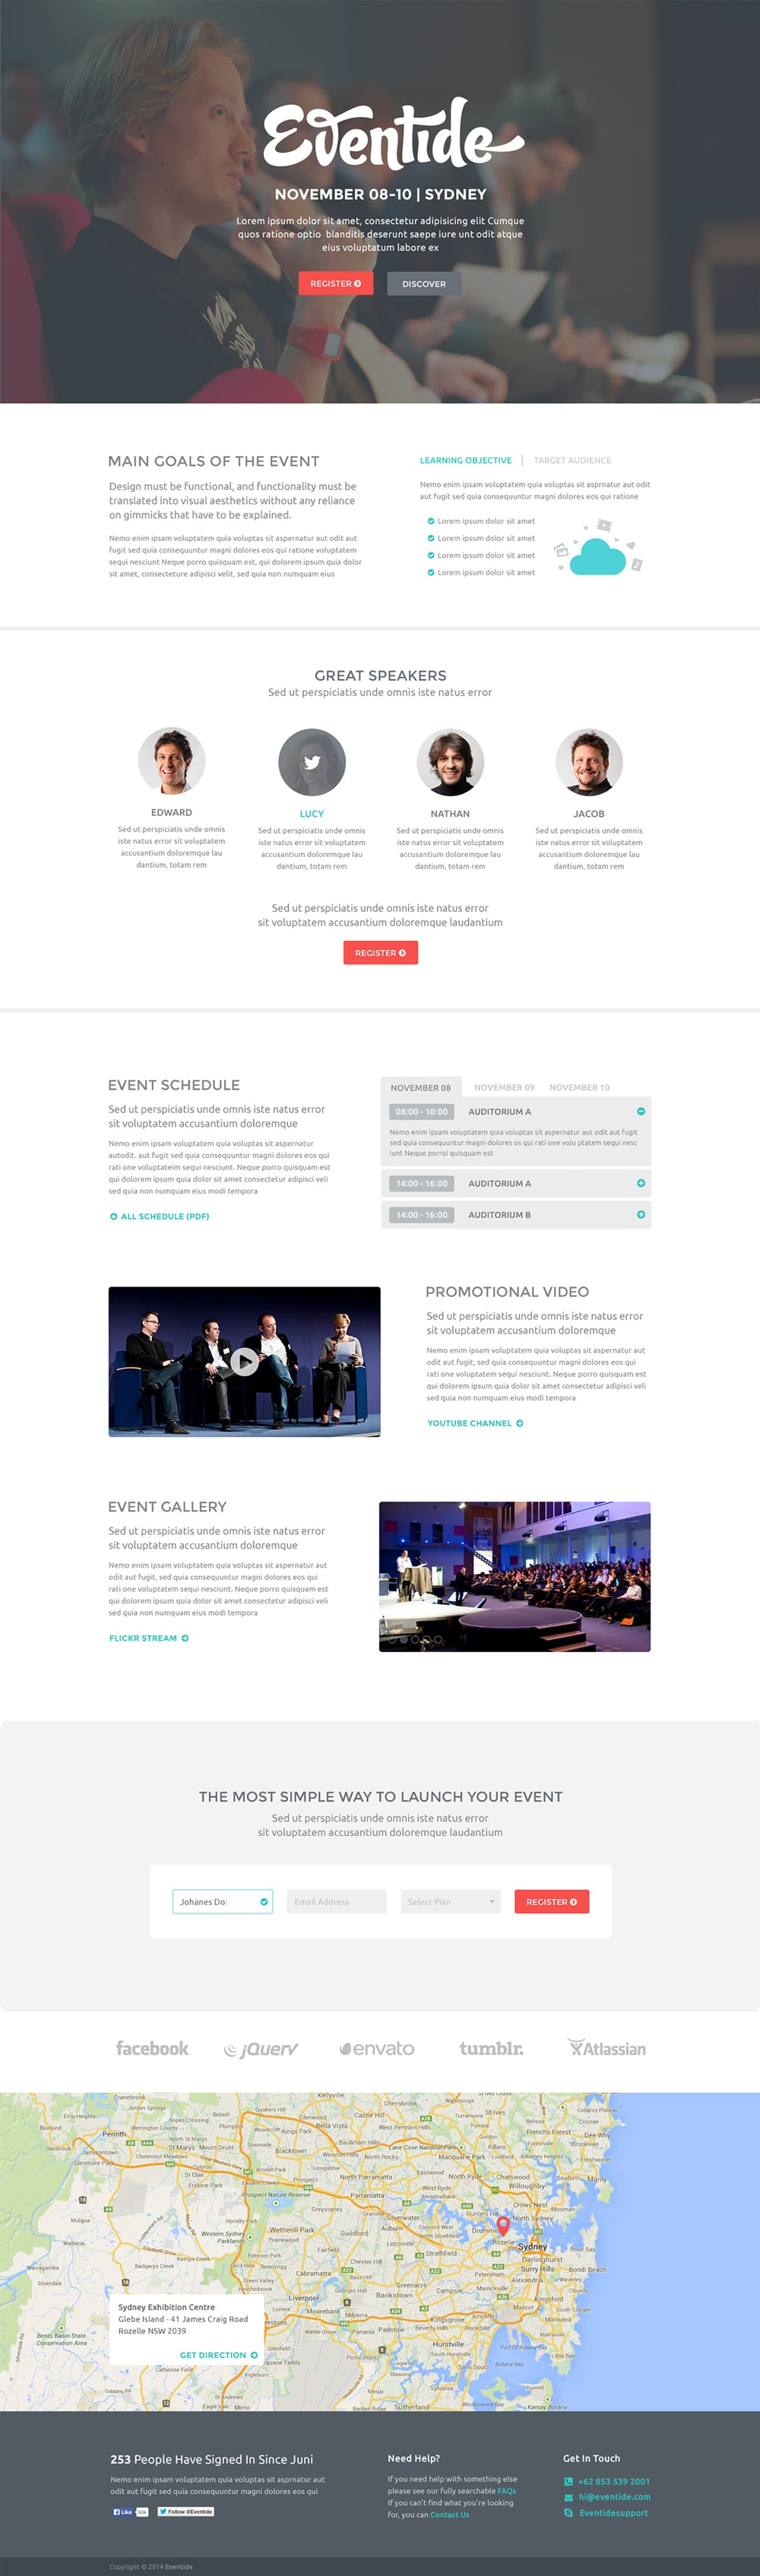 Eventide - Free Landing Page Template PSD